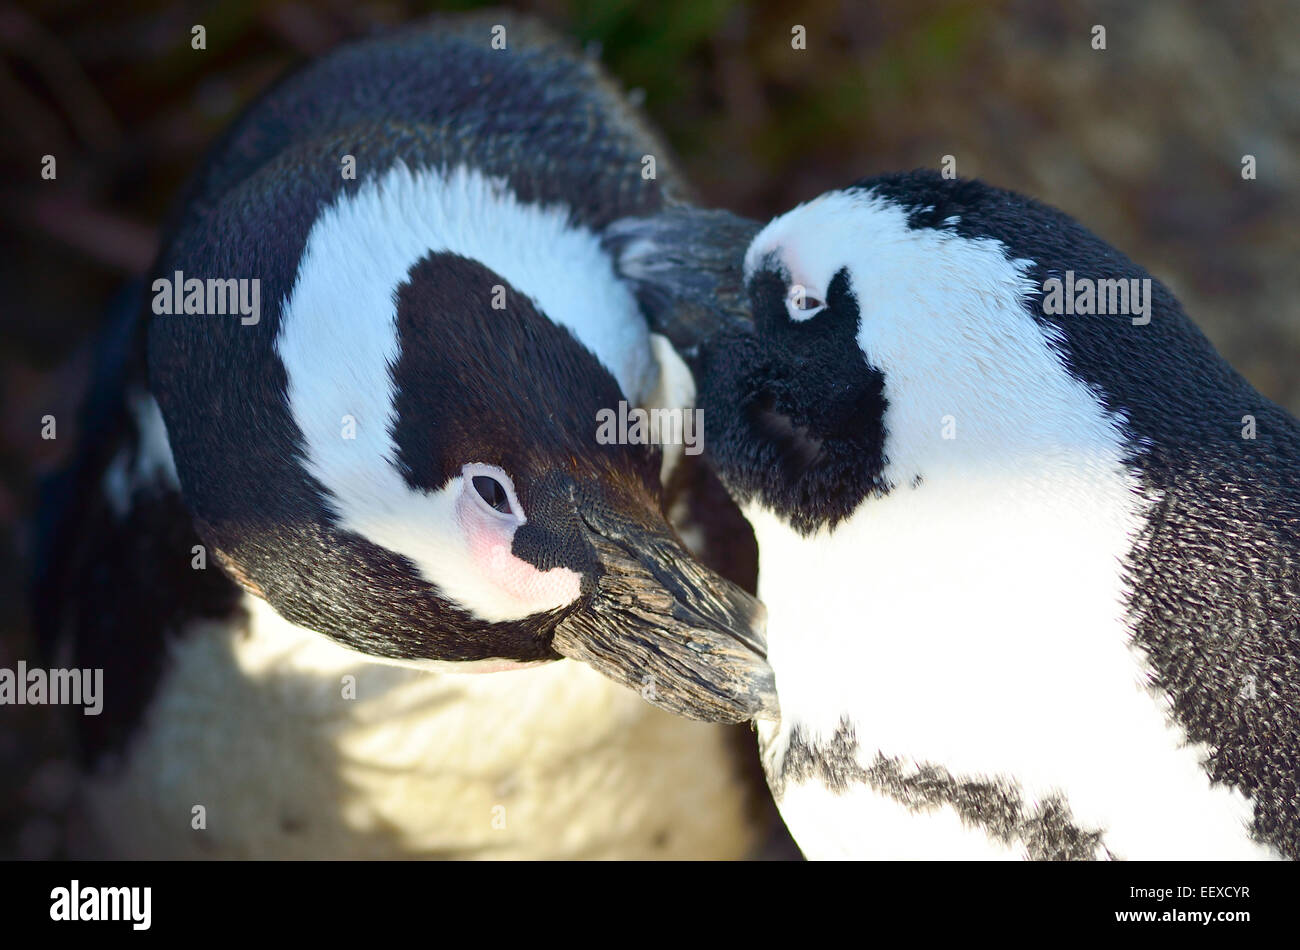 Penguin couple grooming each other - Stock Image